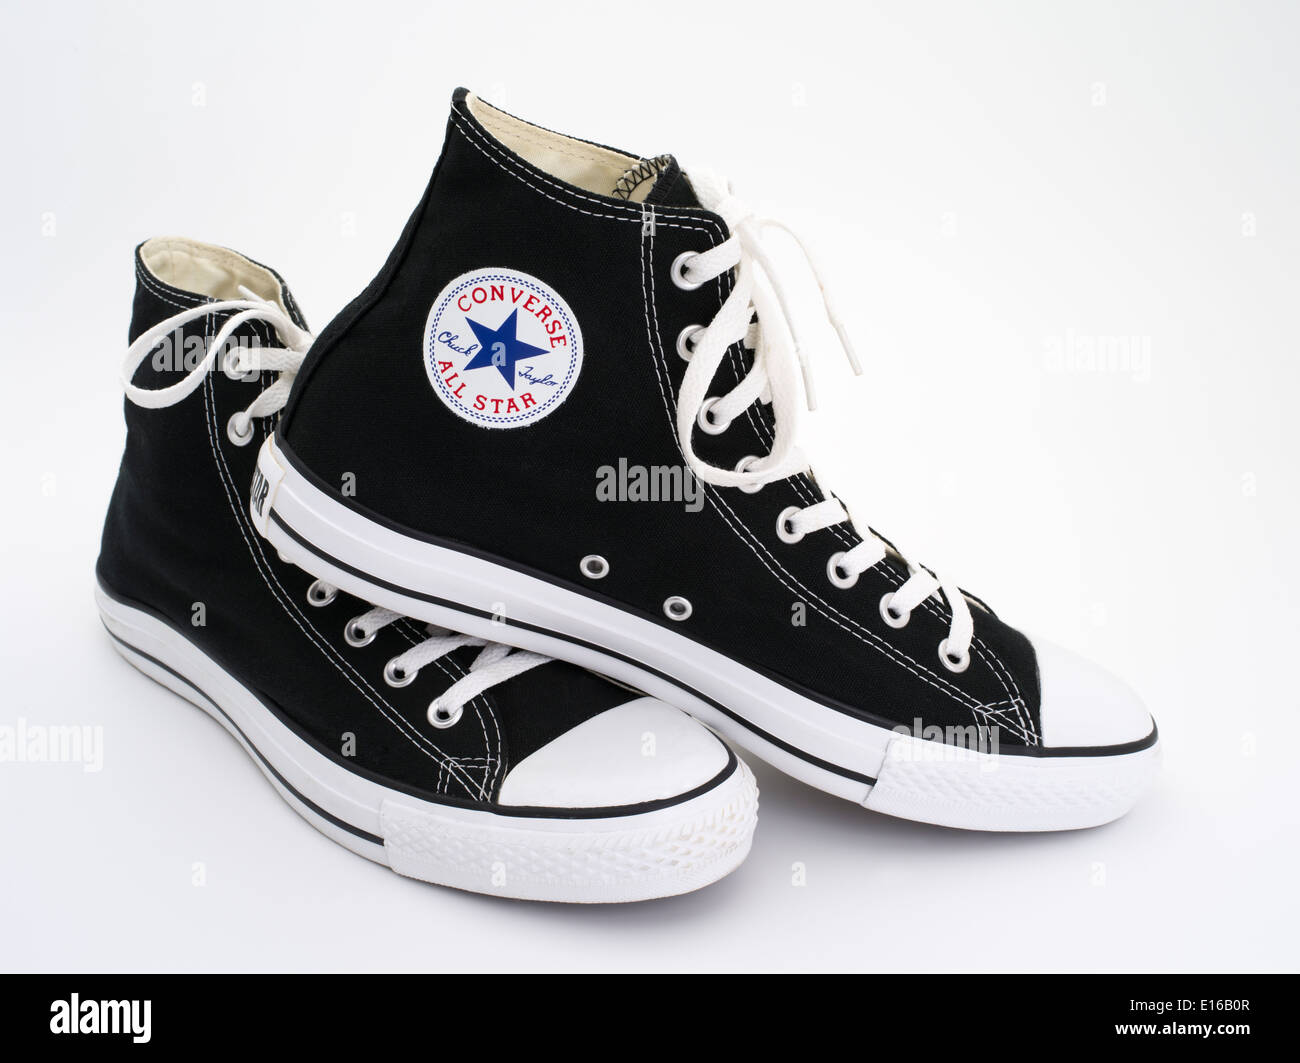 979ff83da59f Converse All Star Black and White Chuck Taylor - Chuck Taylor All-Stars  canvas and